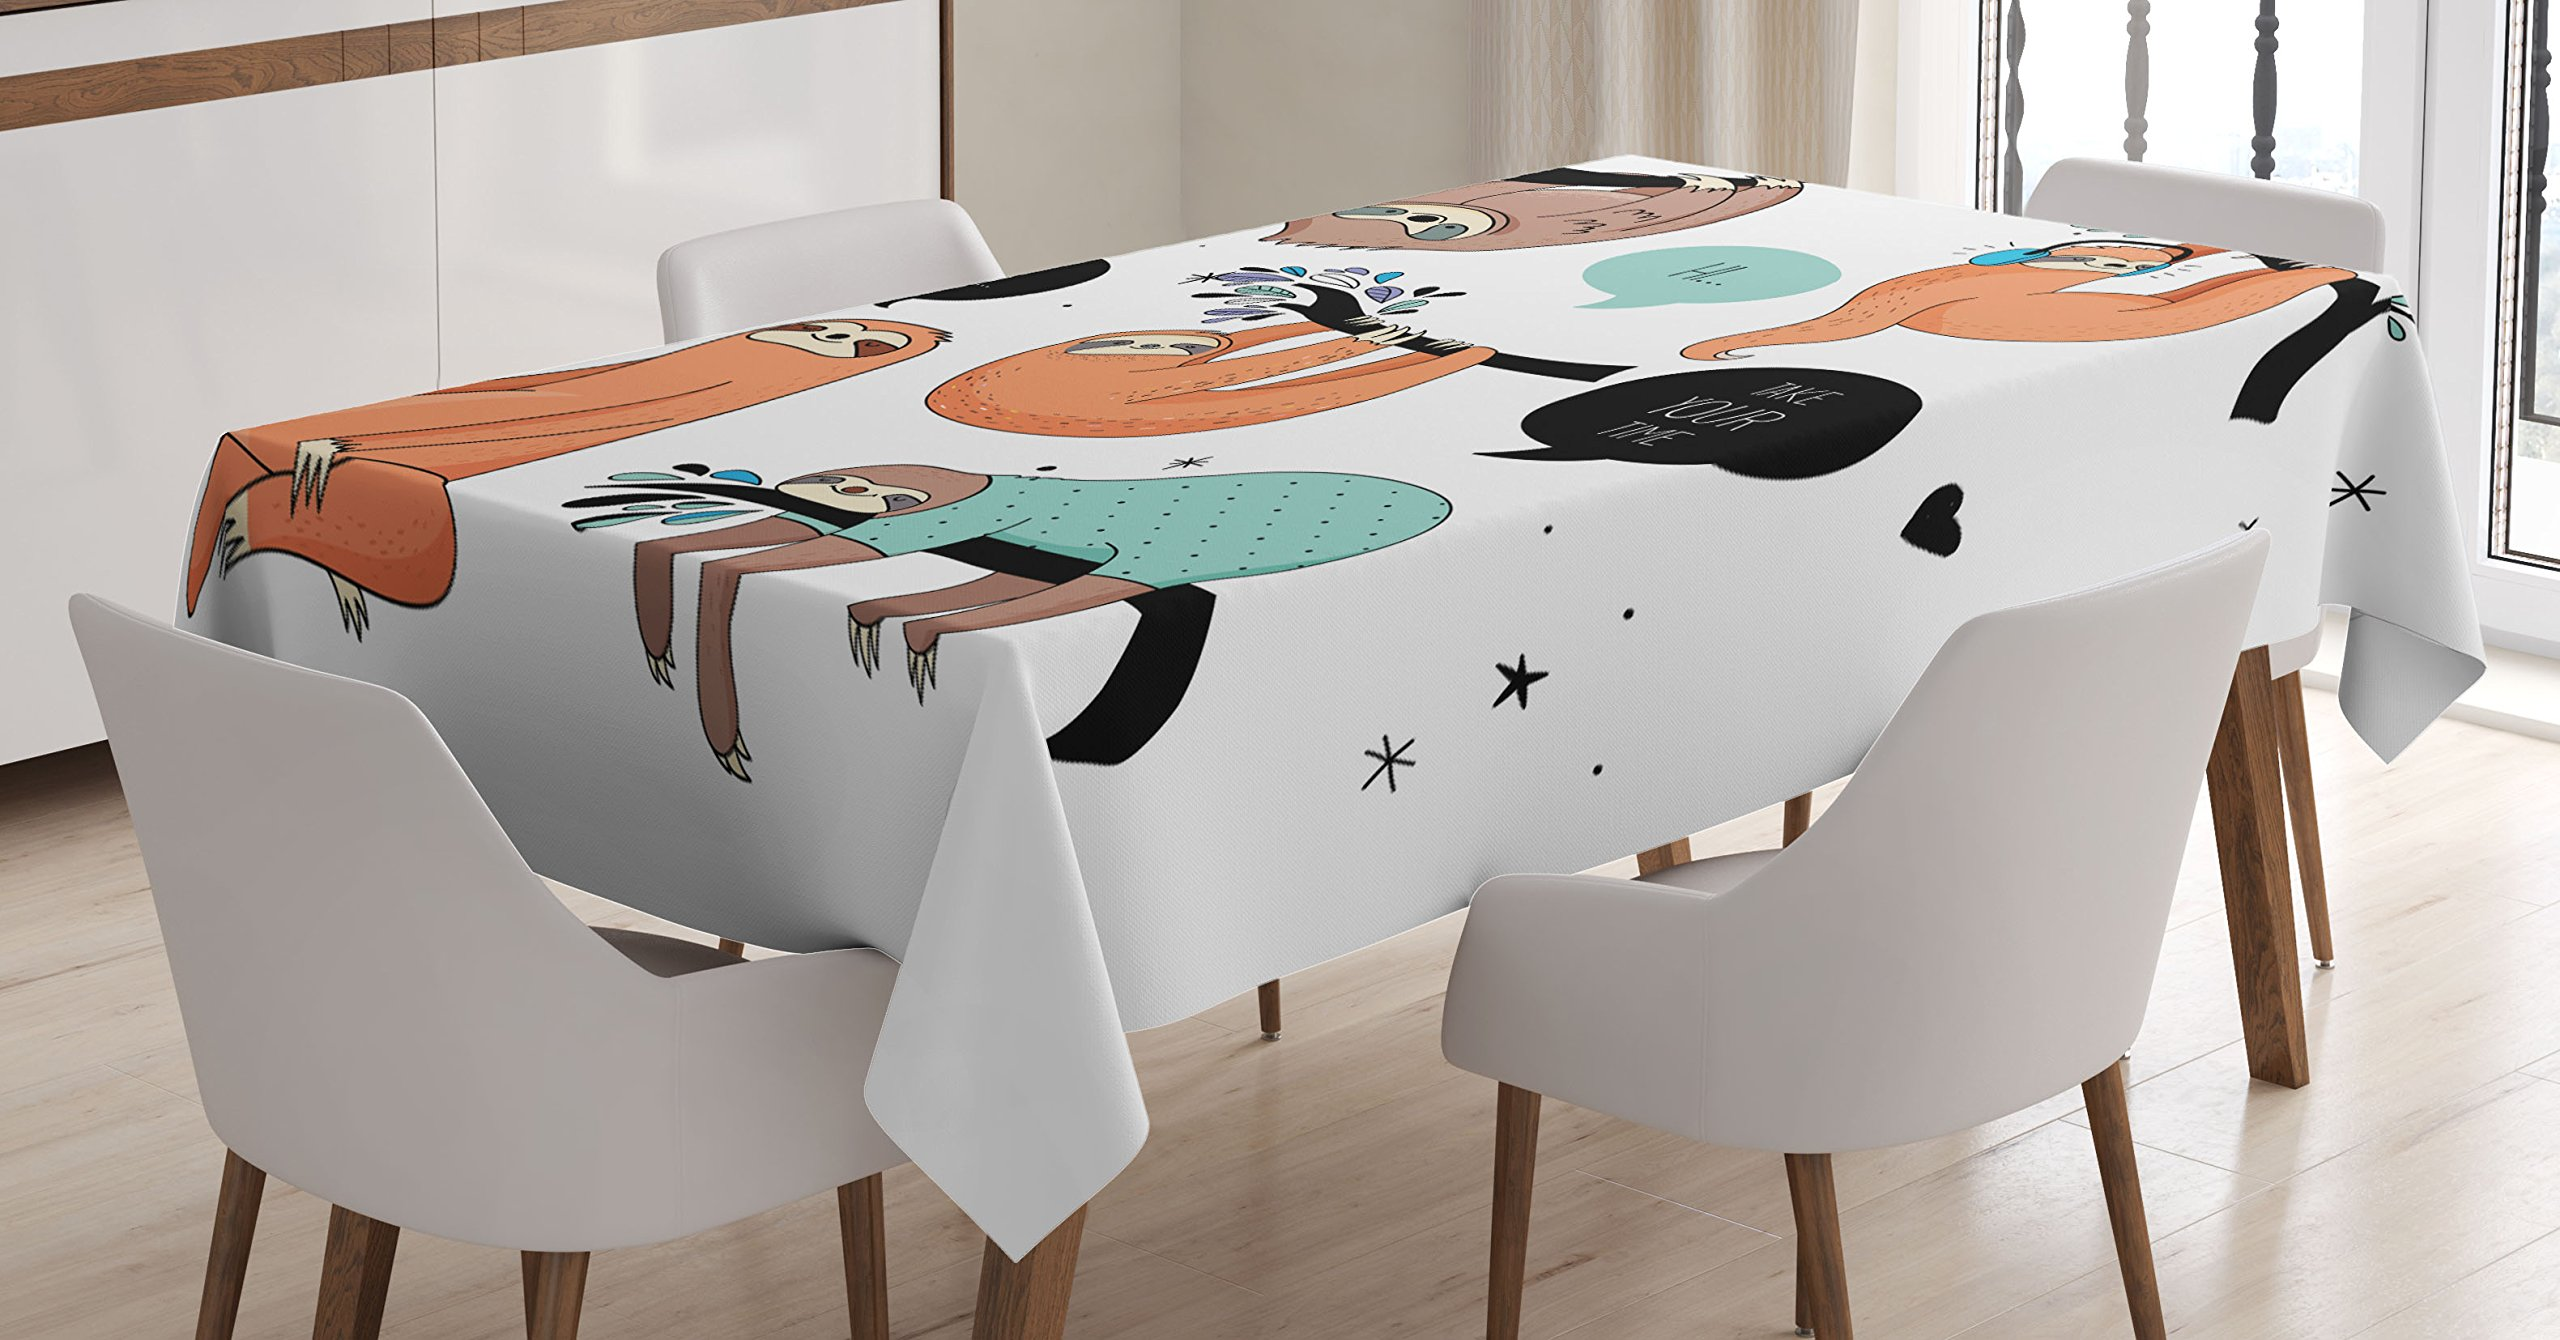 Ambesonne Animal Decor Tablecloth, Cartoon Illustration Tribe of Sloths Smiles Sleeping Lazy Does Yoga with Quote, Dining Room Kitchen Rectangular Table Cover, 60 X 84 inches, Multicolor